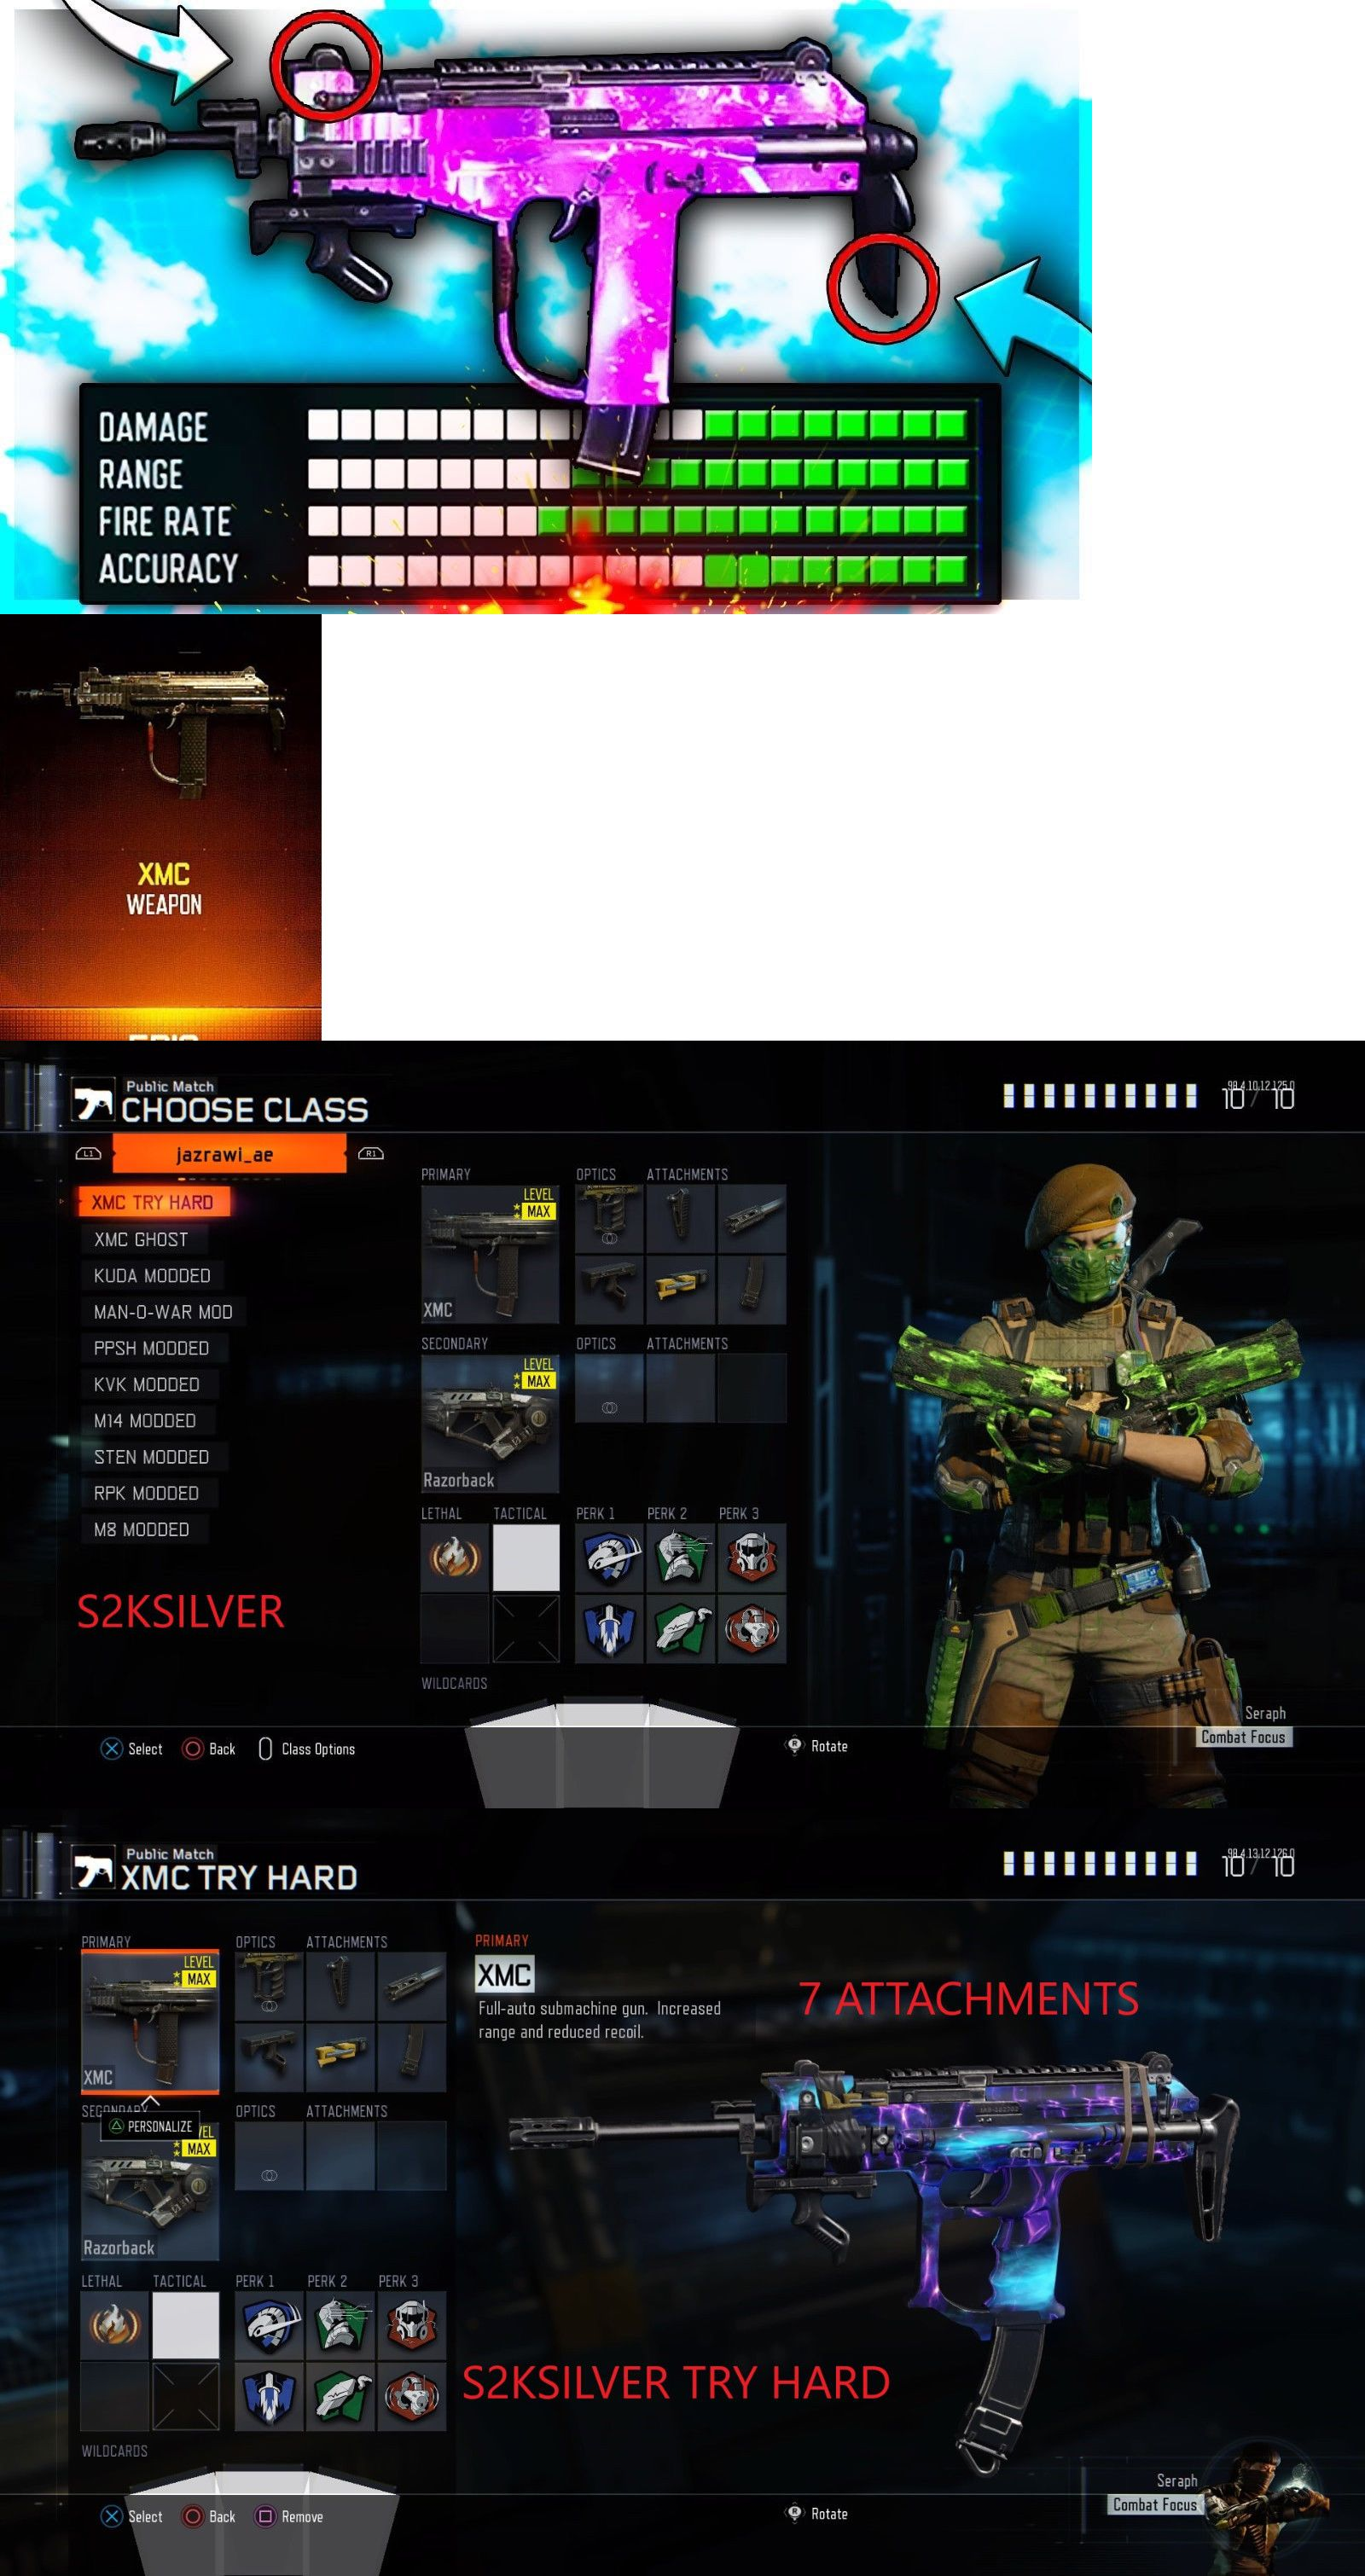 Strategy Guides and Cheats 156595: Black Ops 3 Modded Account With